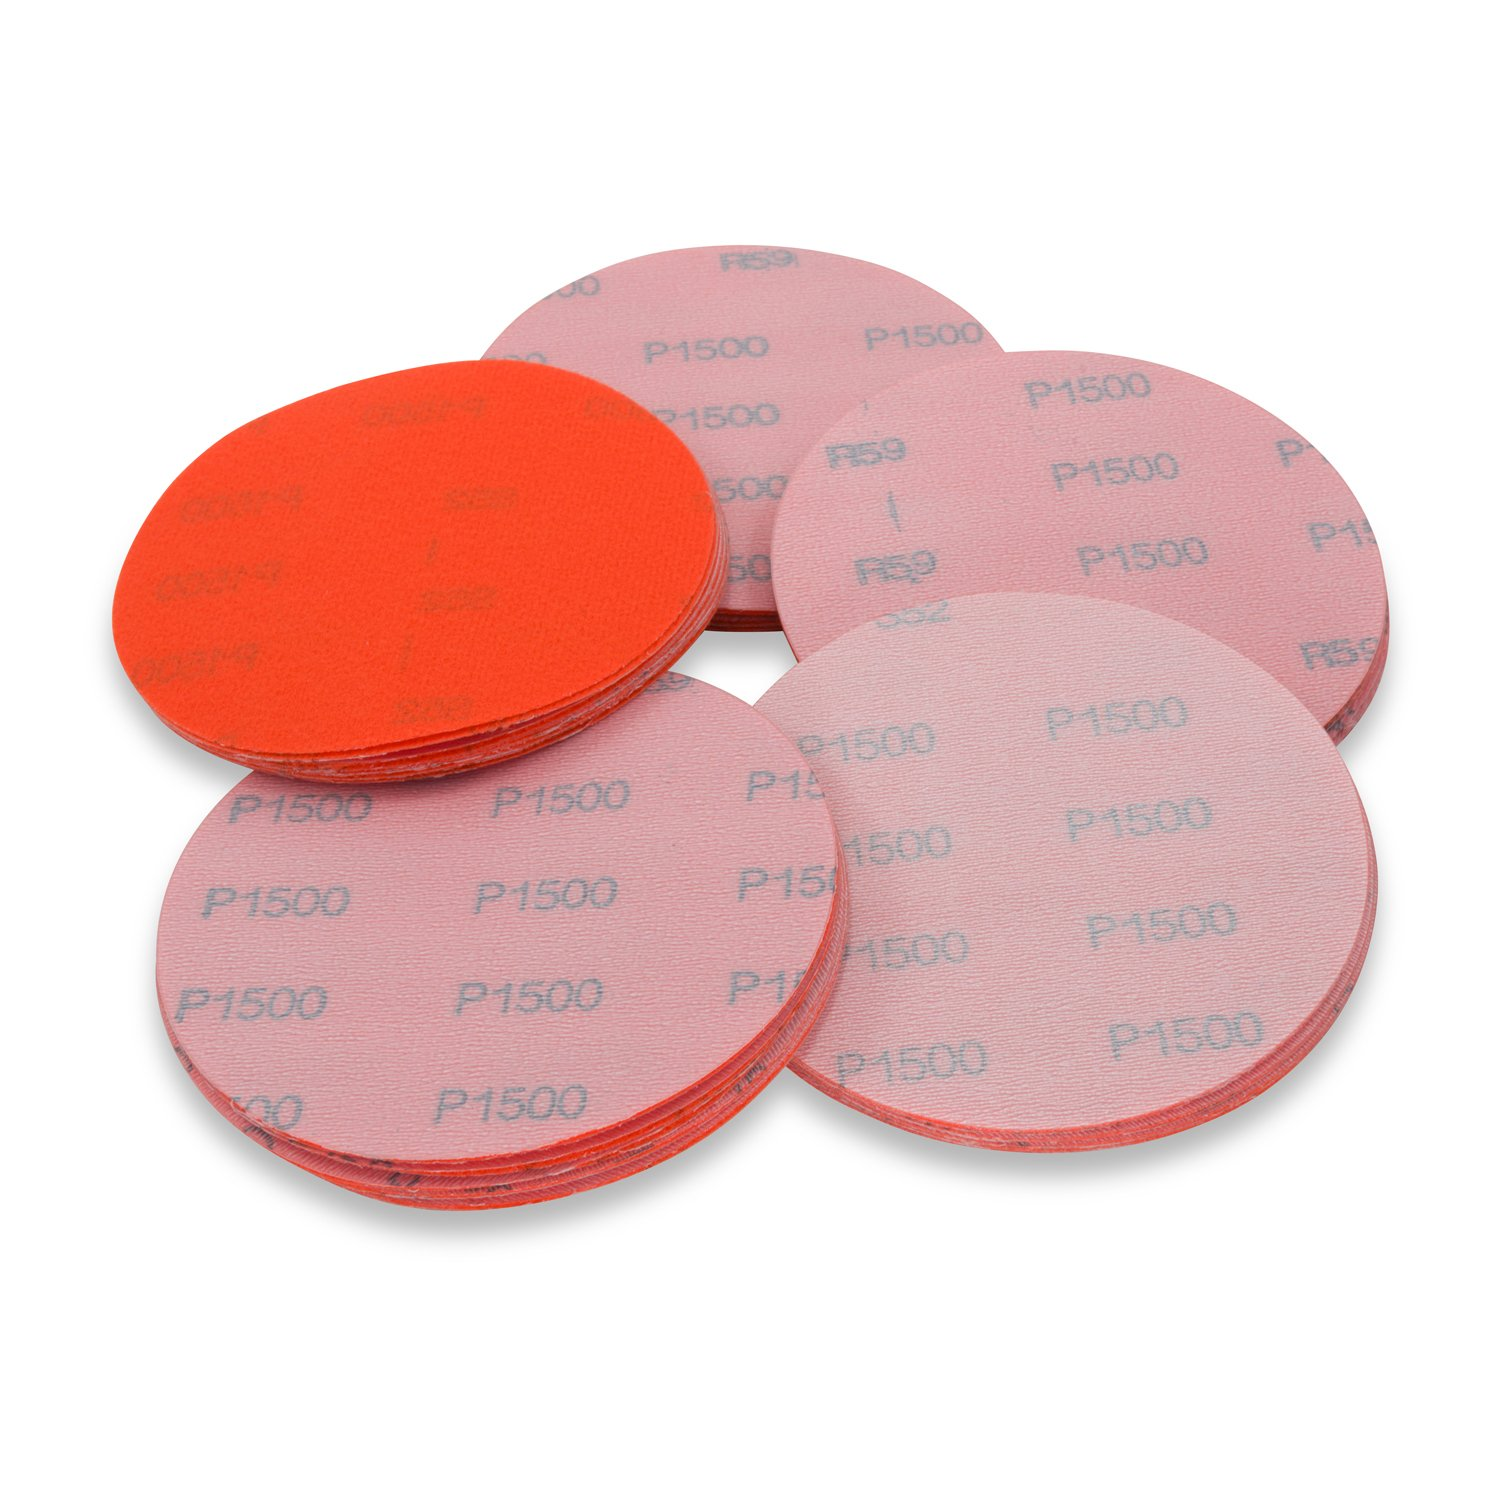 5 Inch 1500 Grit High Performance Hook and Loop Wet/Dry Auto Body Film Sanding Discs, 50 Pack